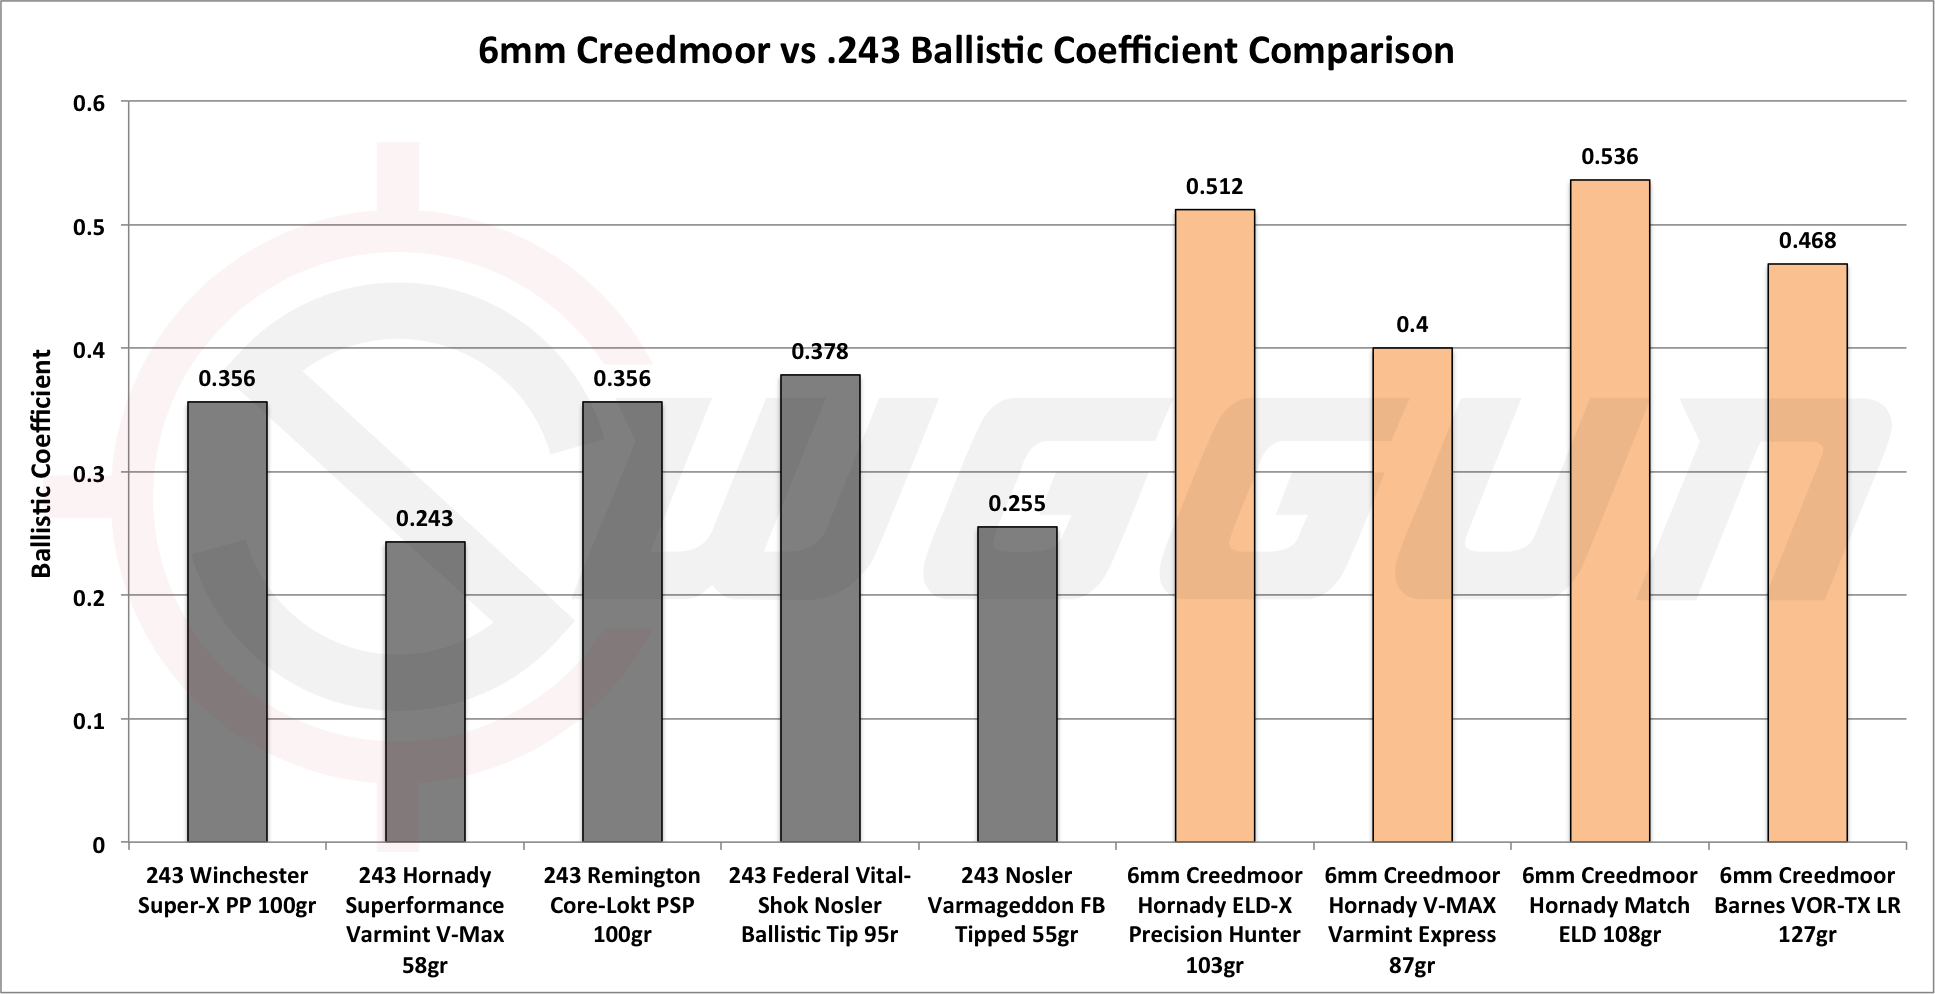 6mm Creedmoor vs .243 ballistics